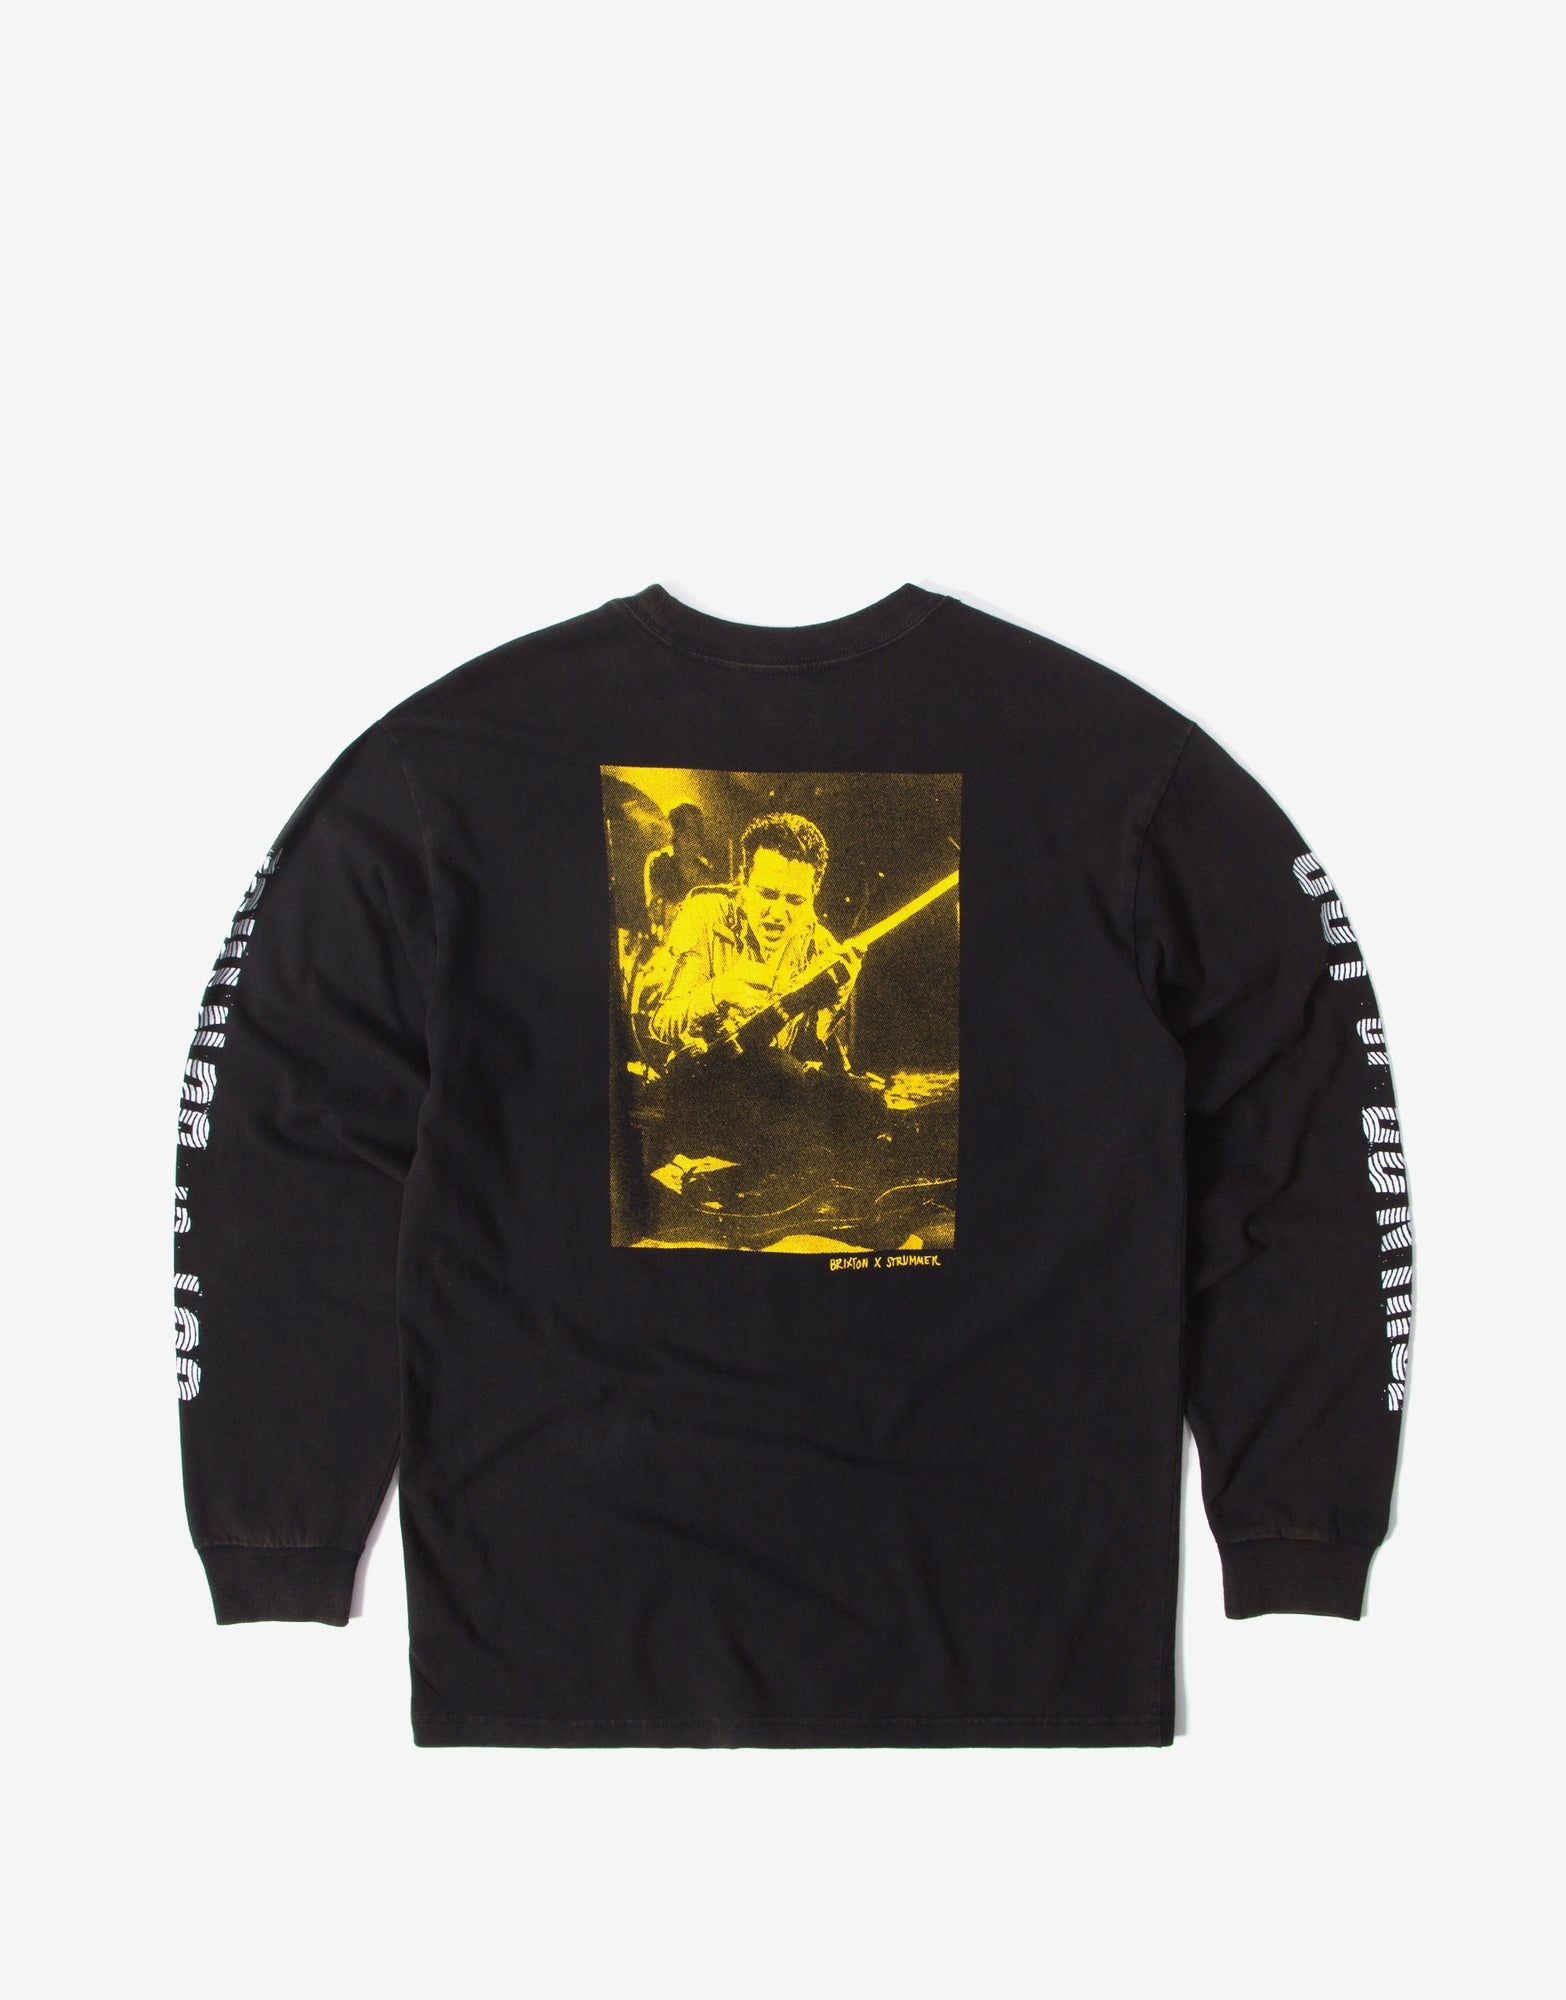 Brixton x Strummer Out Of Control Long Sleeve T Shirt - Black